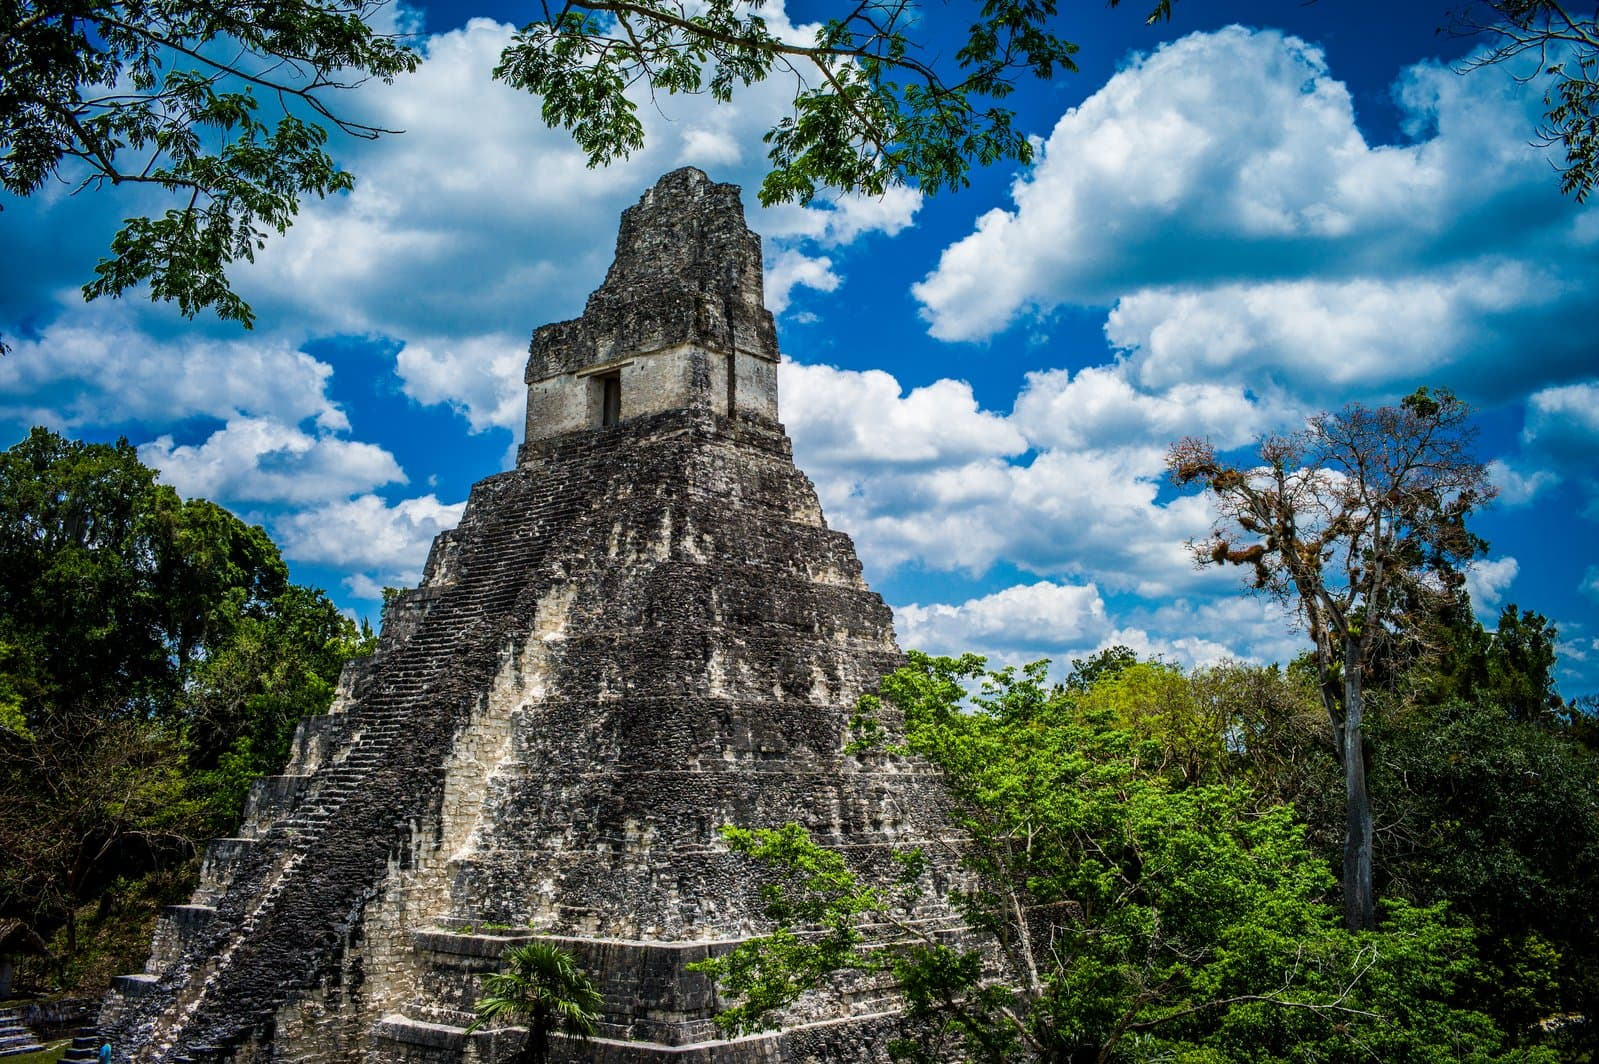 Day 6 – Saturday:  Tikal